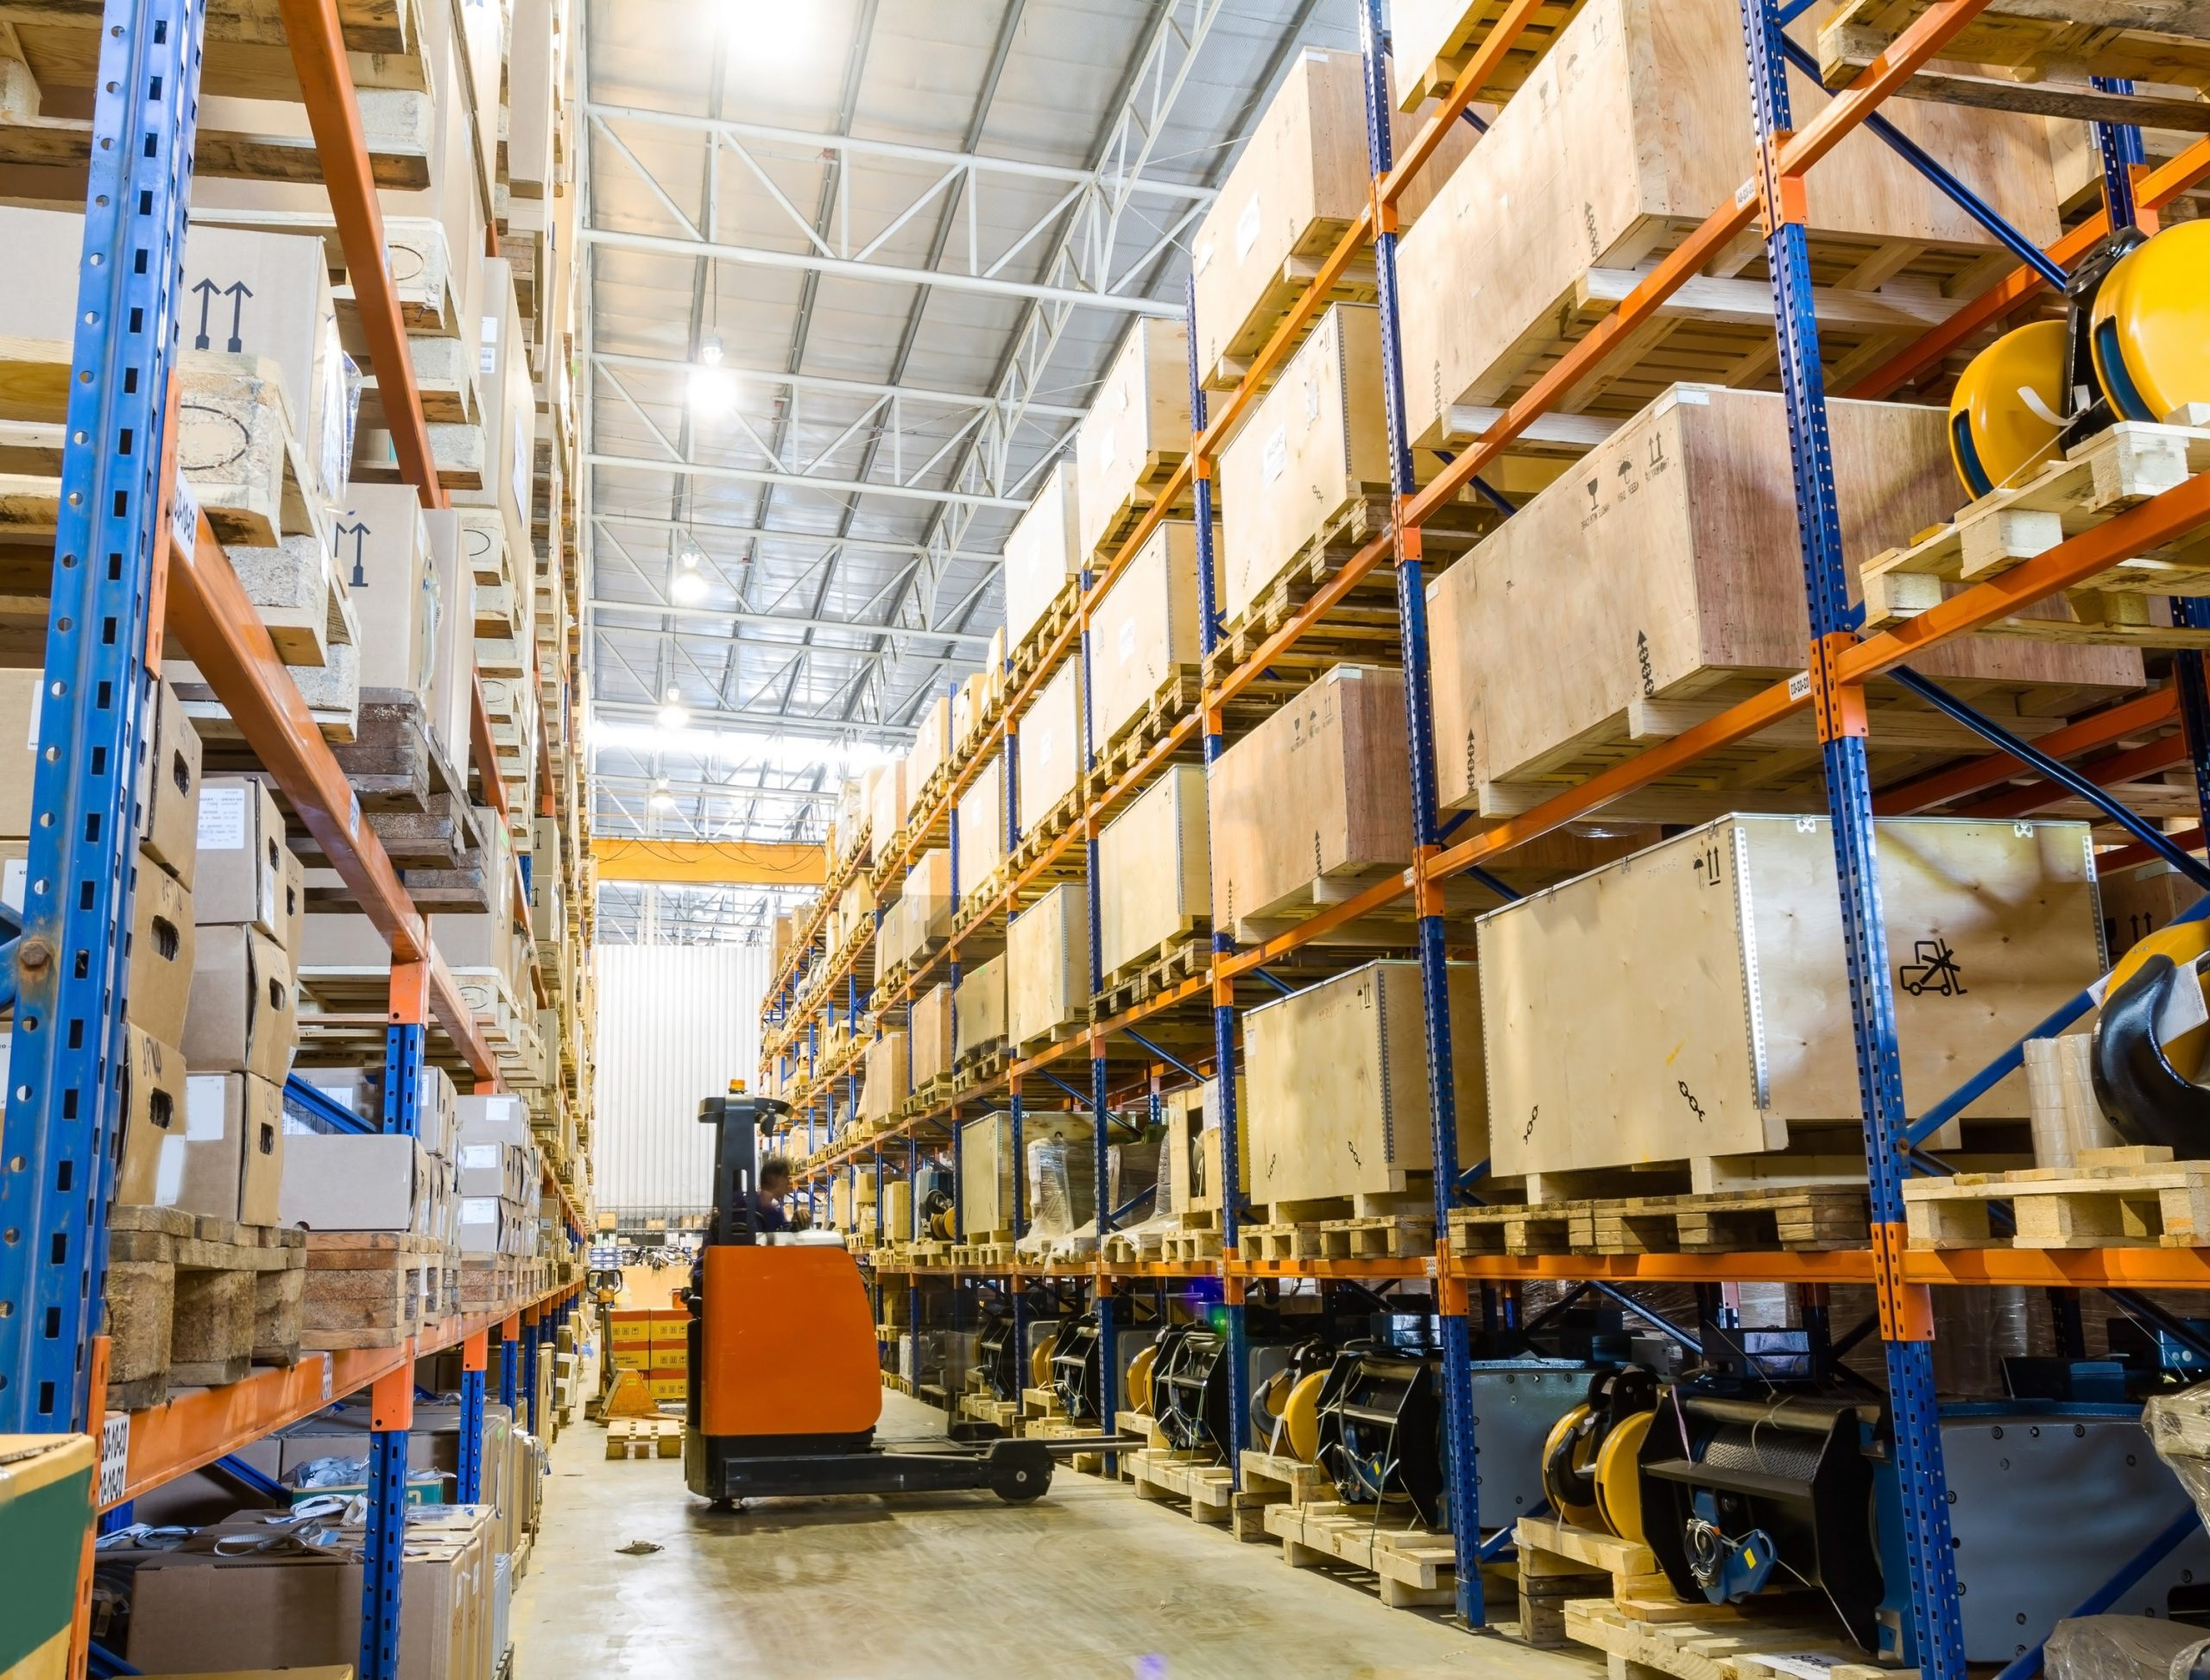 Effective Warehouse Management: 7 Tips for Effectively Managing Your Warehouse